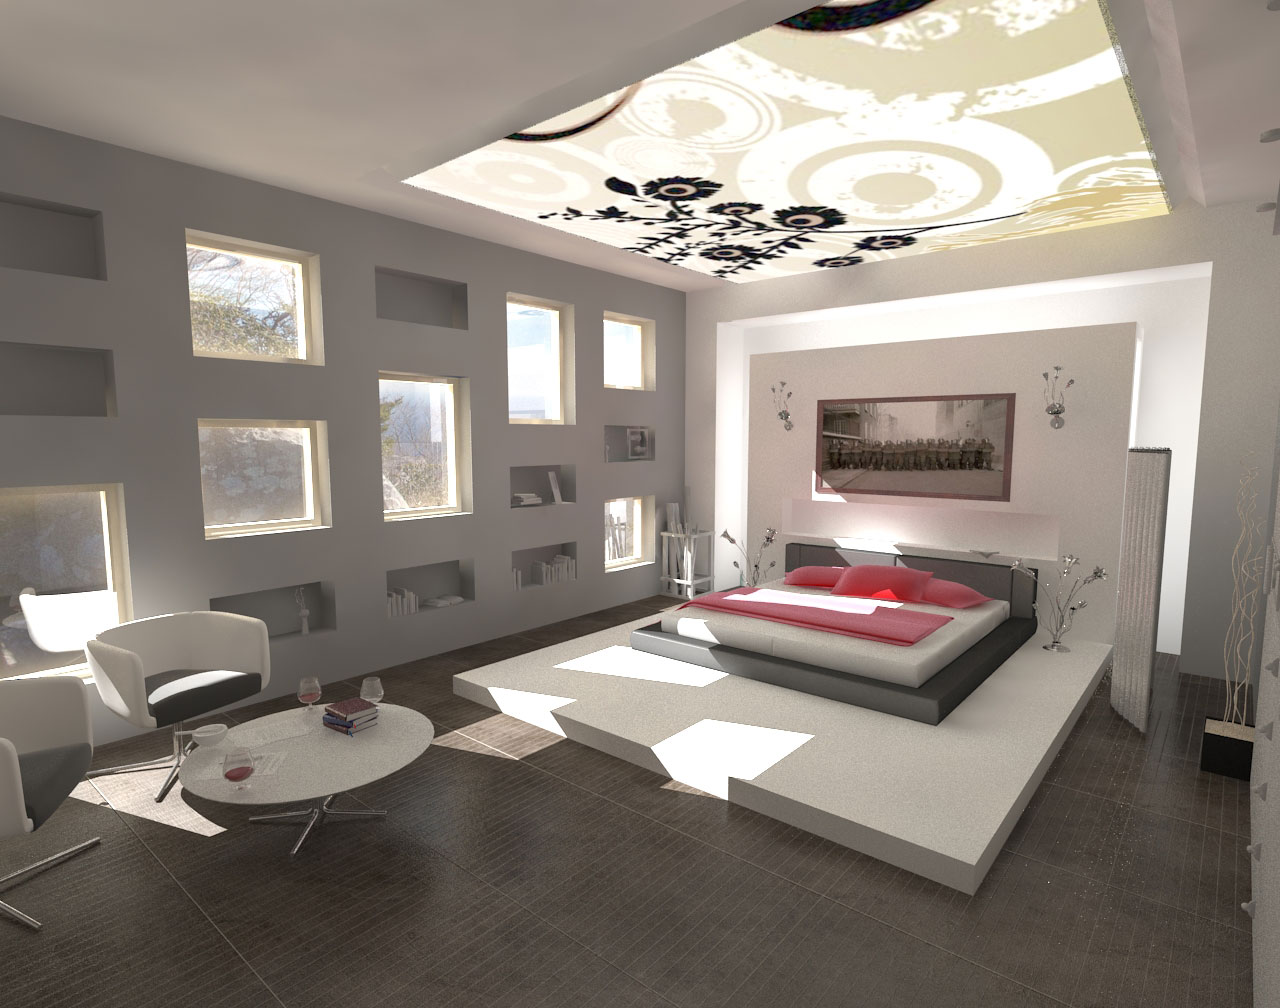 Decorations minimalist design modern bedroom interior for Minimalist bed design